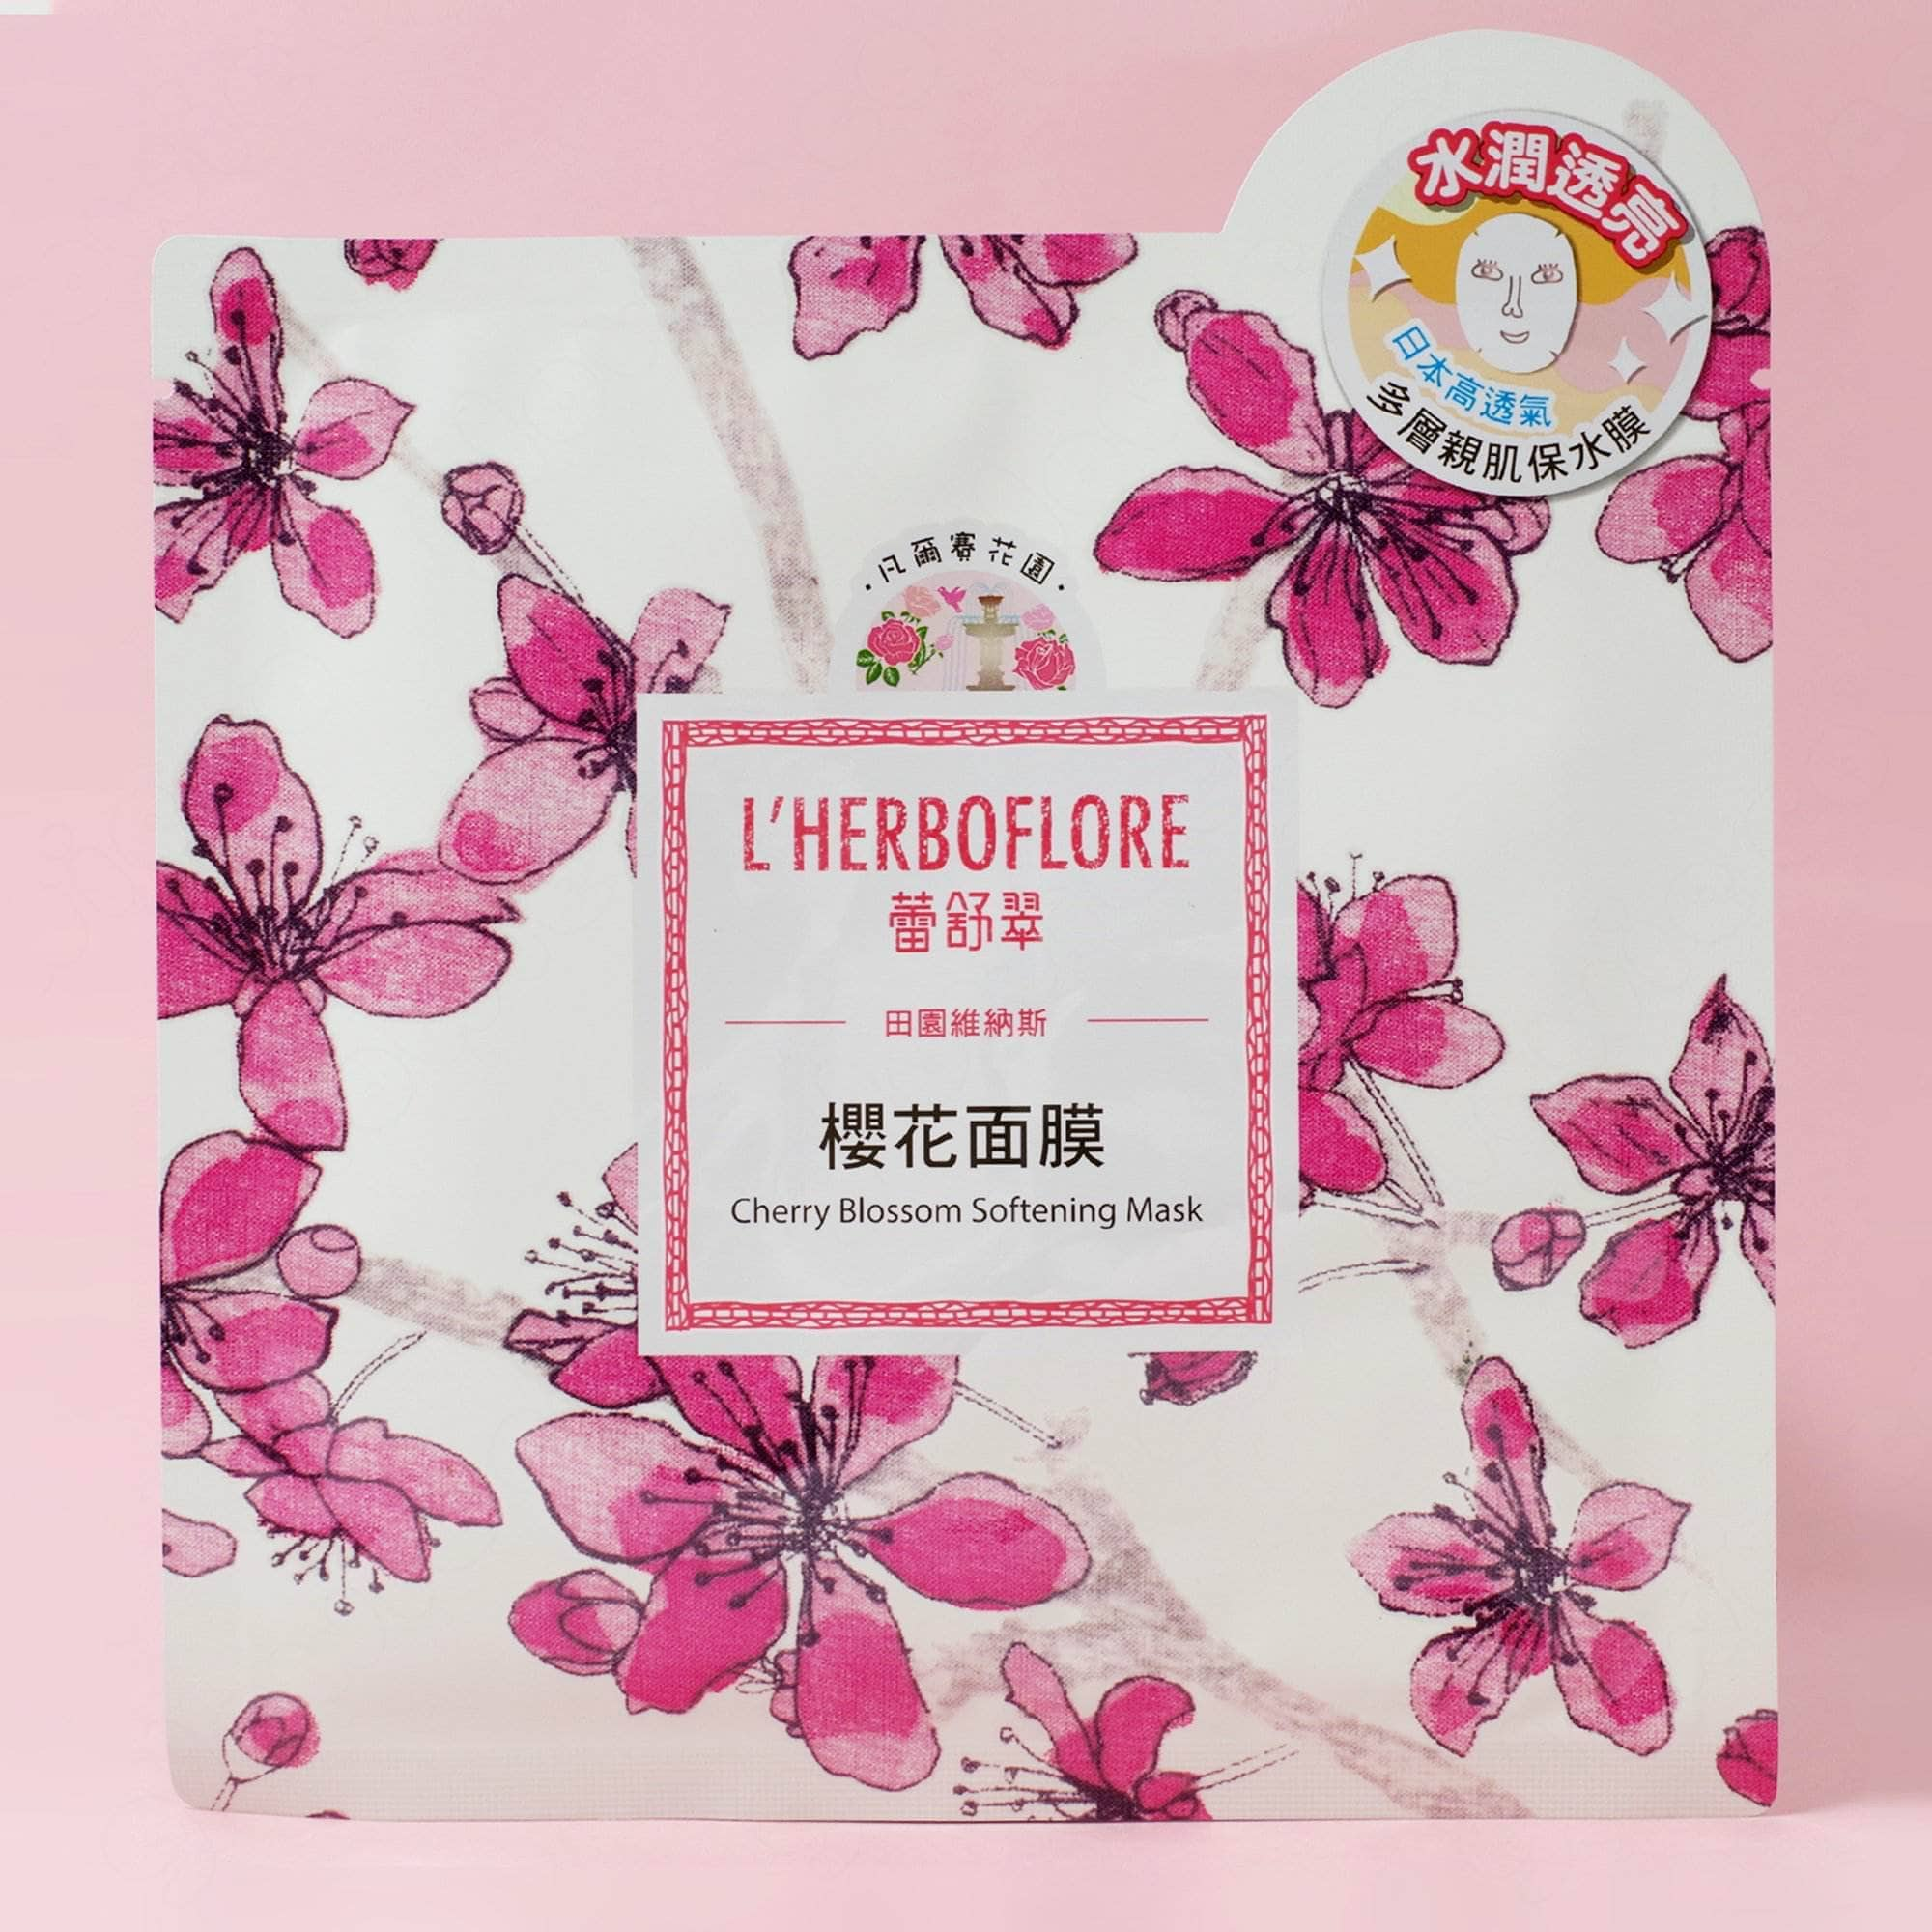 L'Herboflore Cherry Blossom Softening Mask